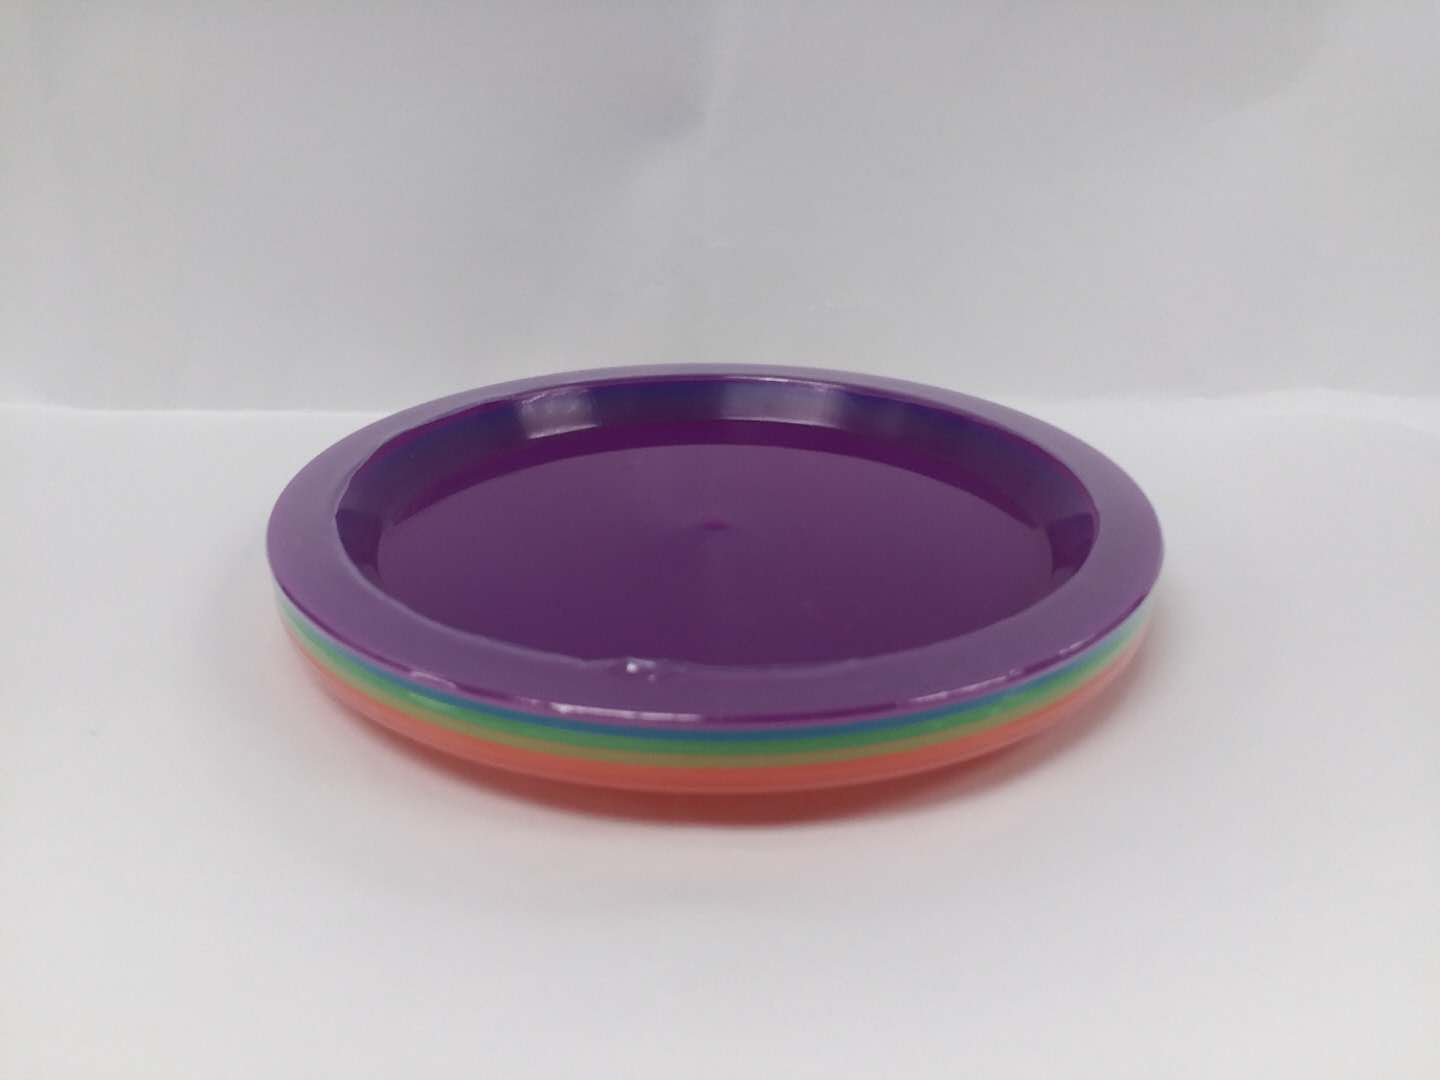 Mainstays Serving Plate